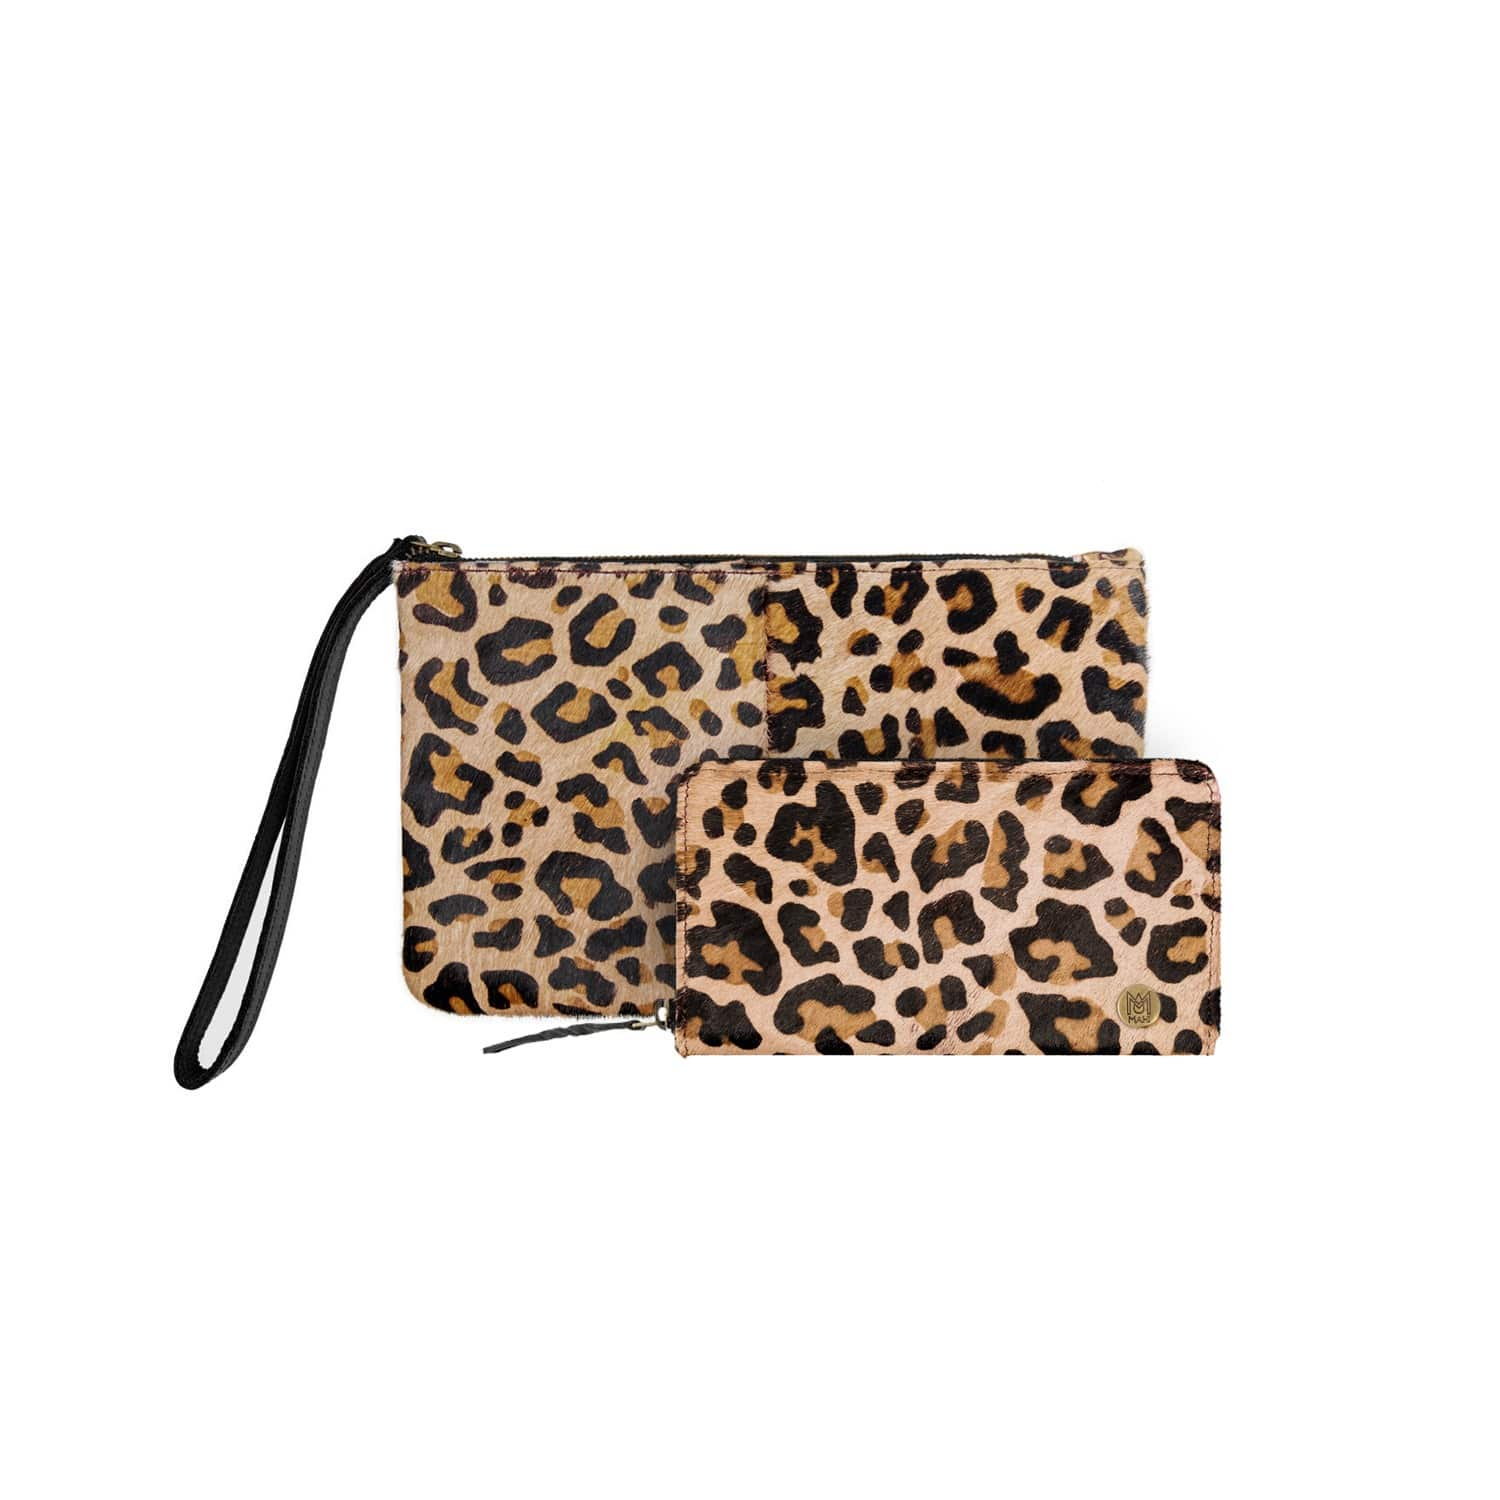 Matching Clutch   Purse Gift Set In Leopard Print Pony Hair Leather ... c64cfc3016fb4